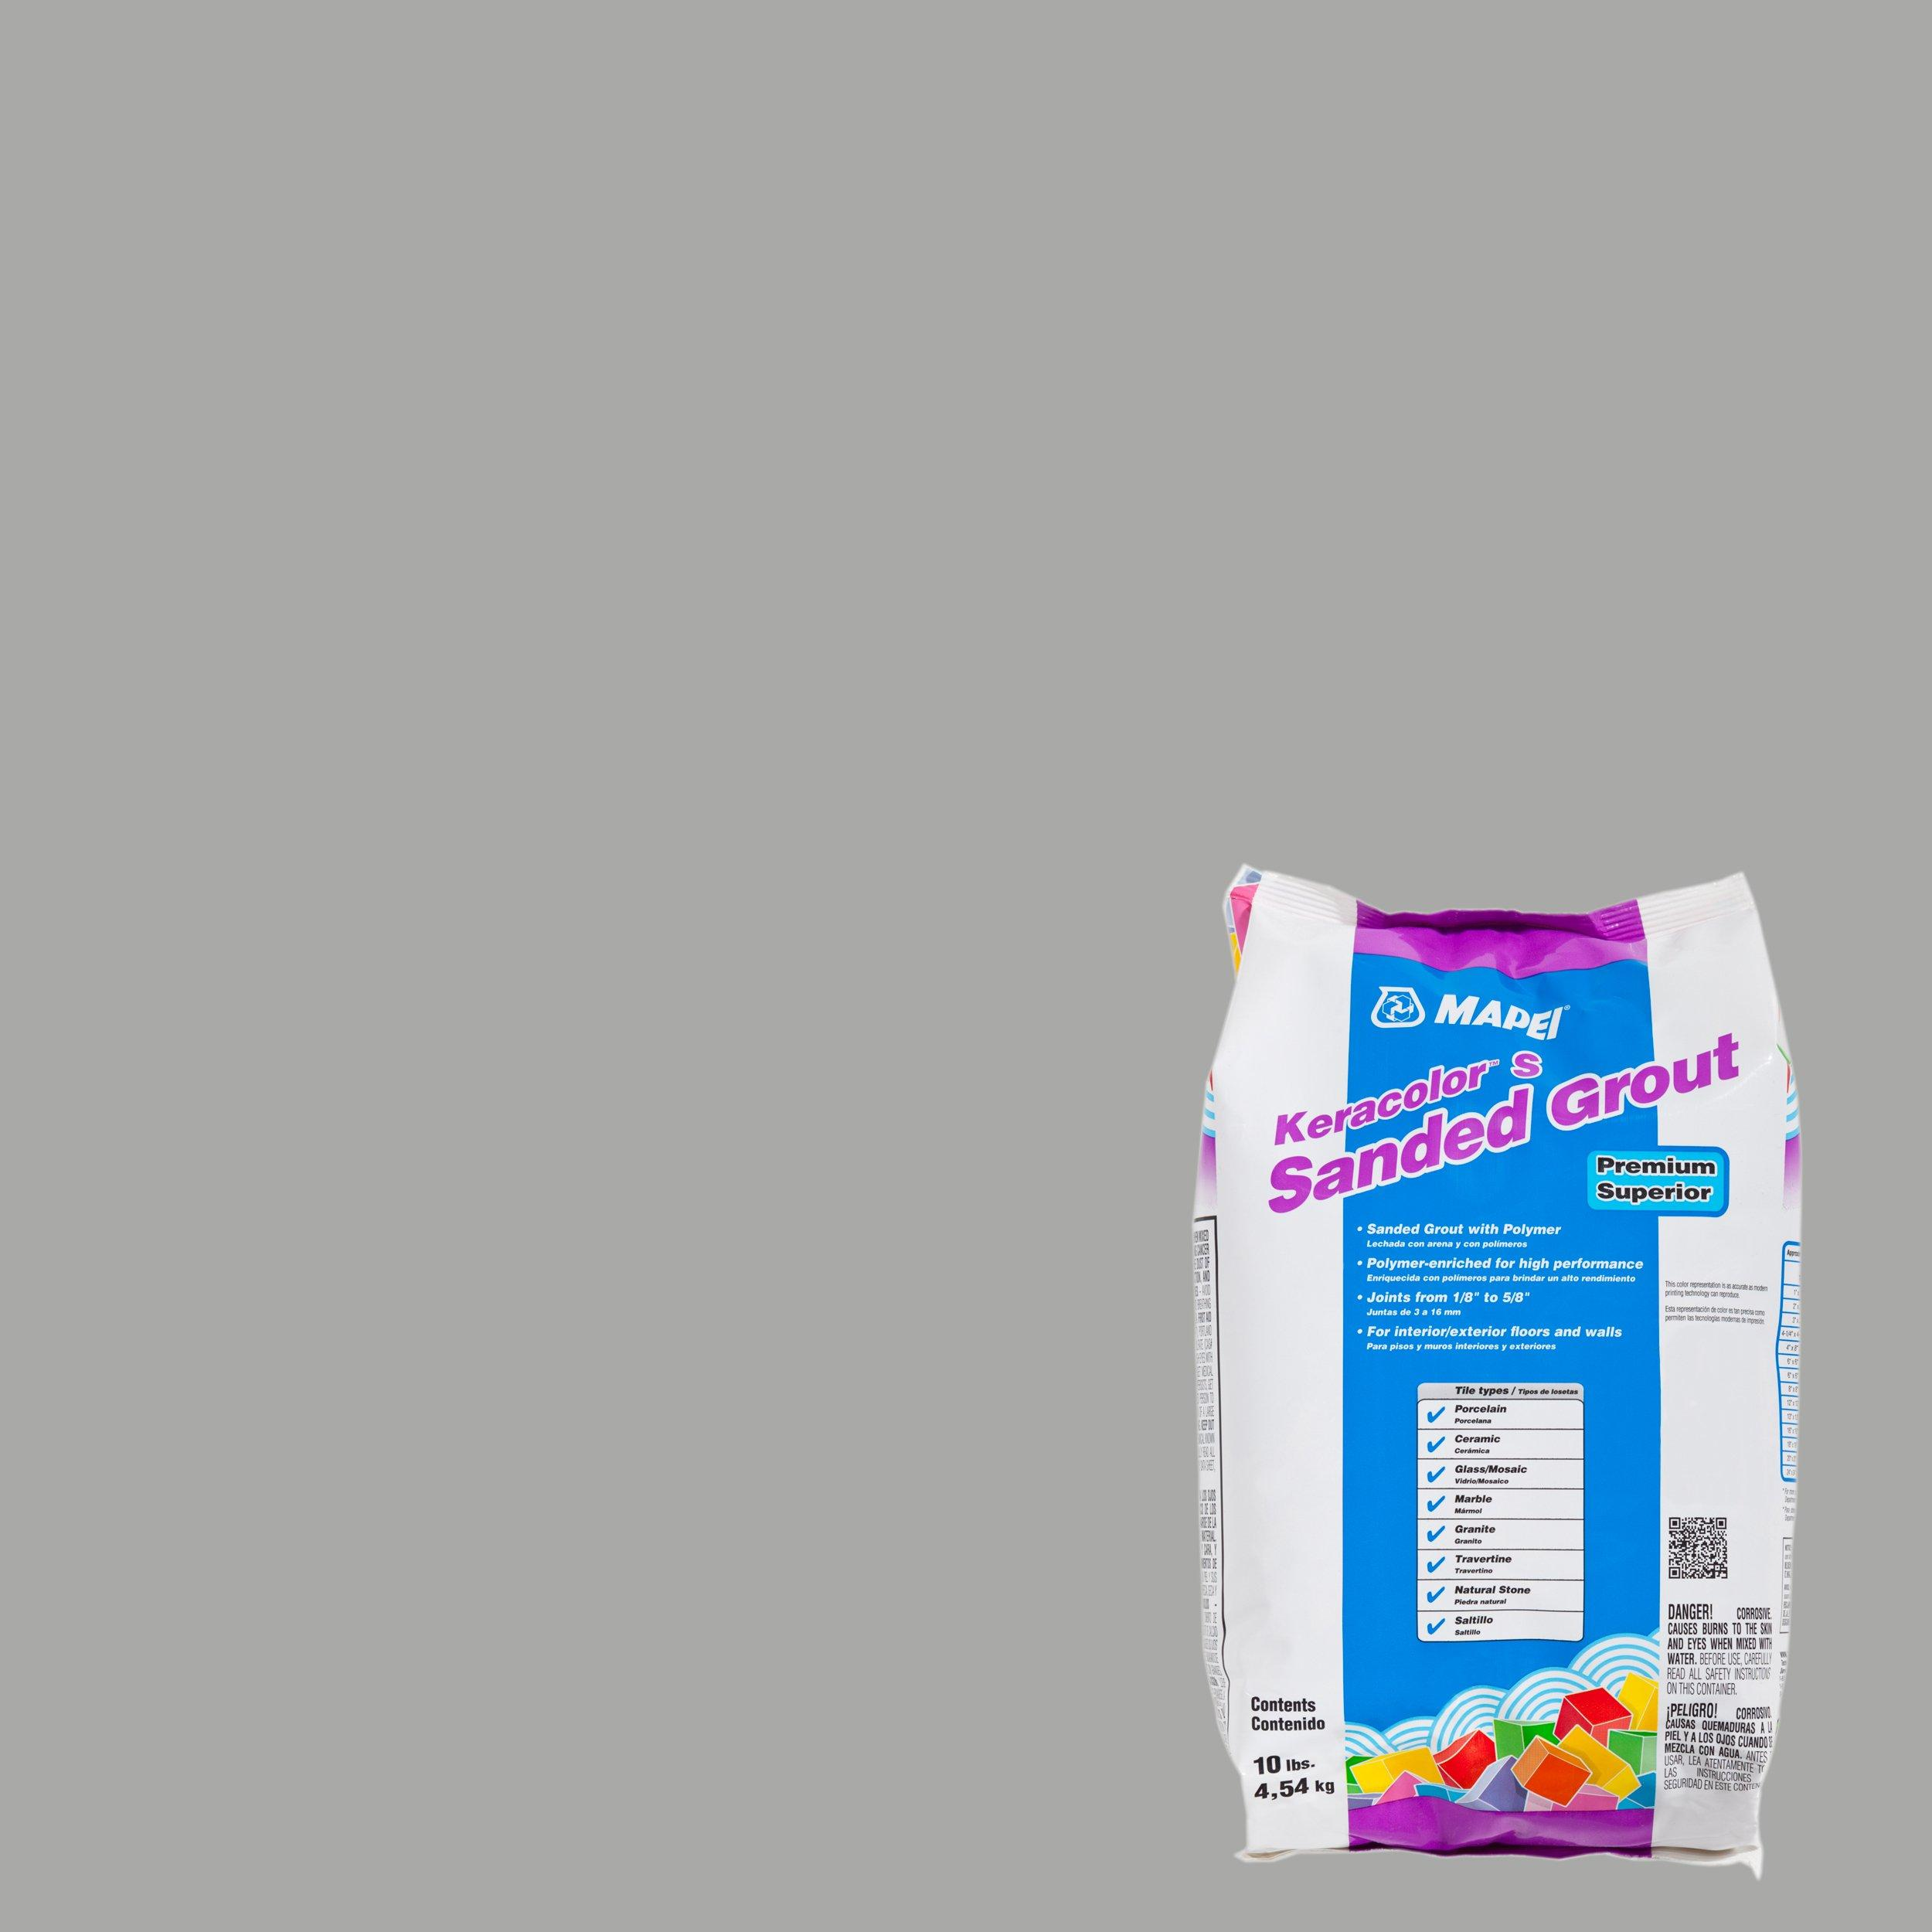 Mapei 27 Silver KeraColor Sanded Grout - 10lb  - 100035575 | Floor